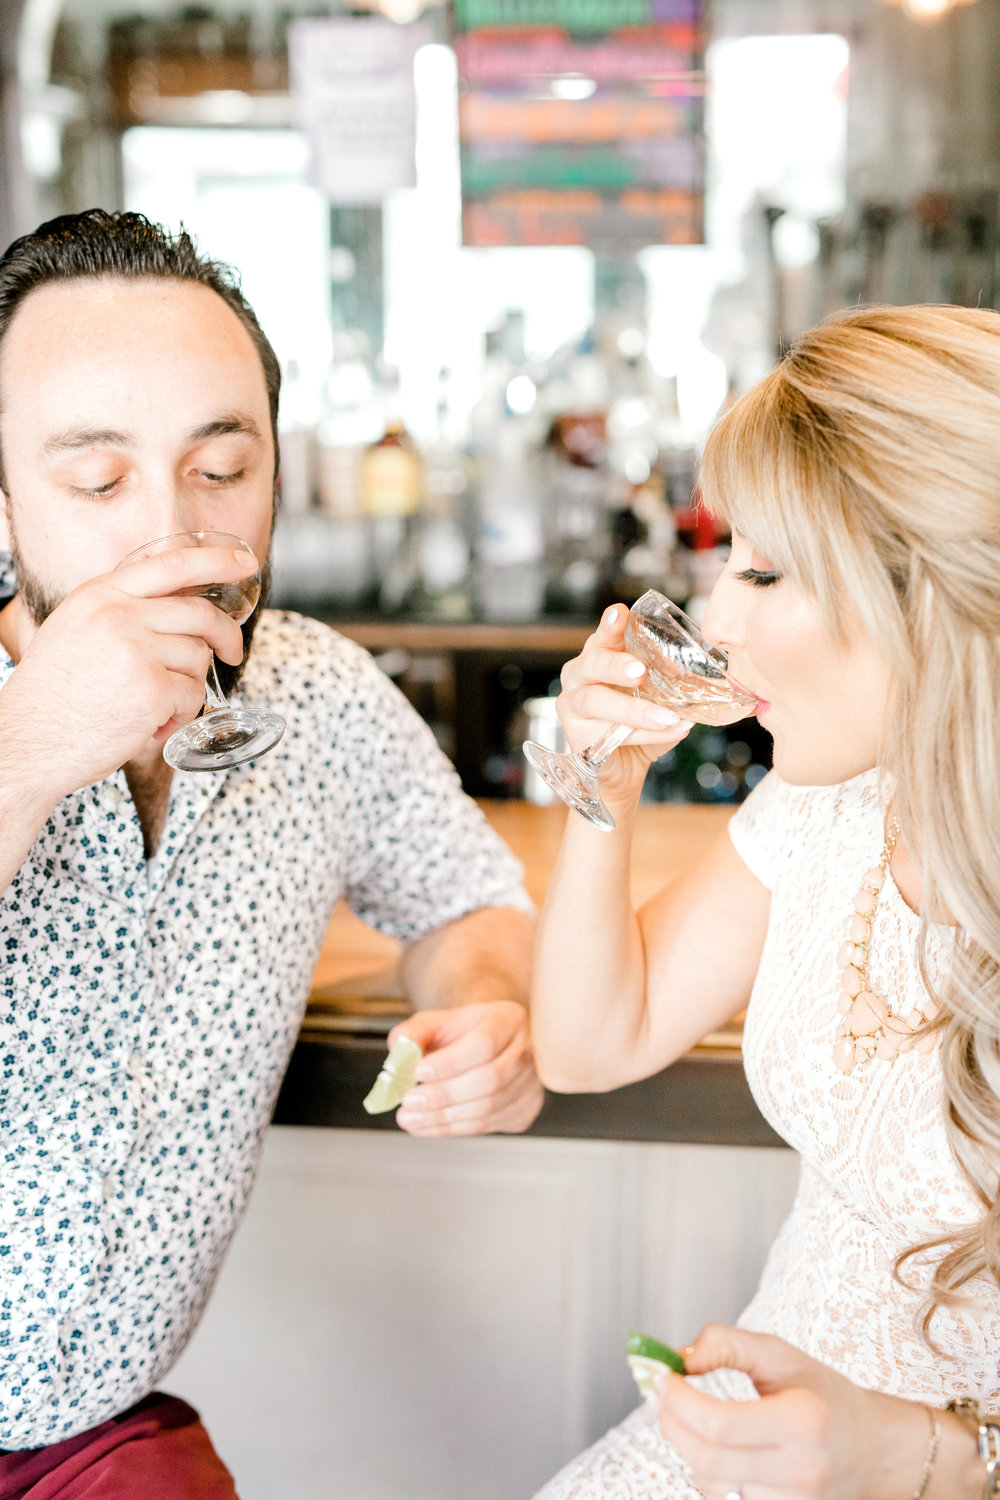 Tequila shots at your engagement session are a great way to loosen up and create some fun images of the two of you. Nikki and Dale took theirs at the Revolution House in Old City, Philadelphia.